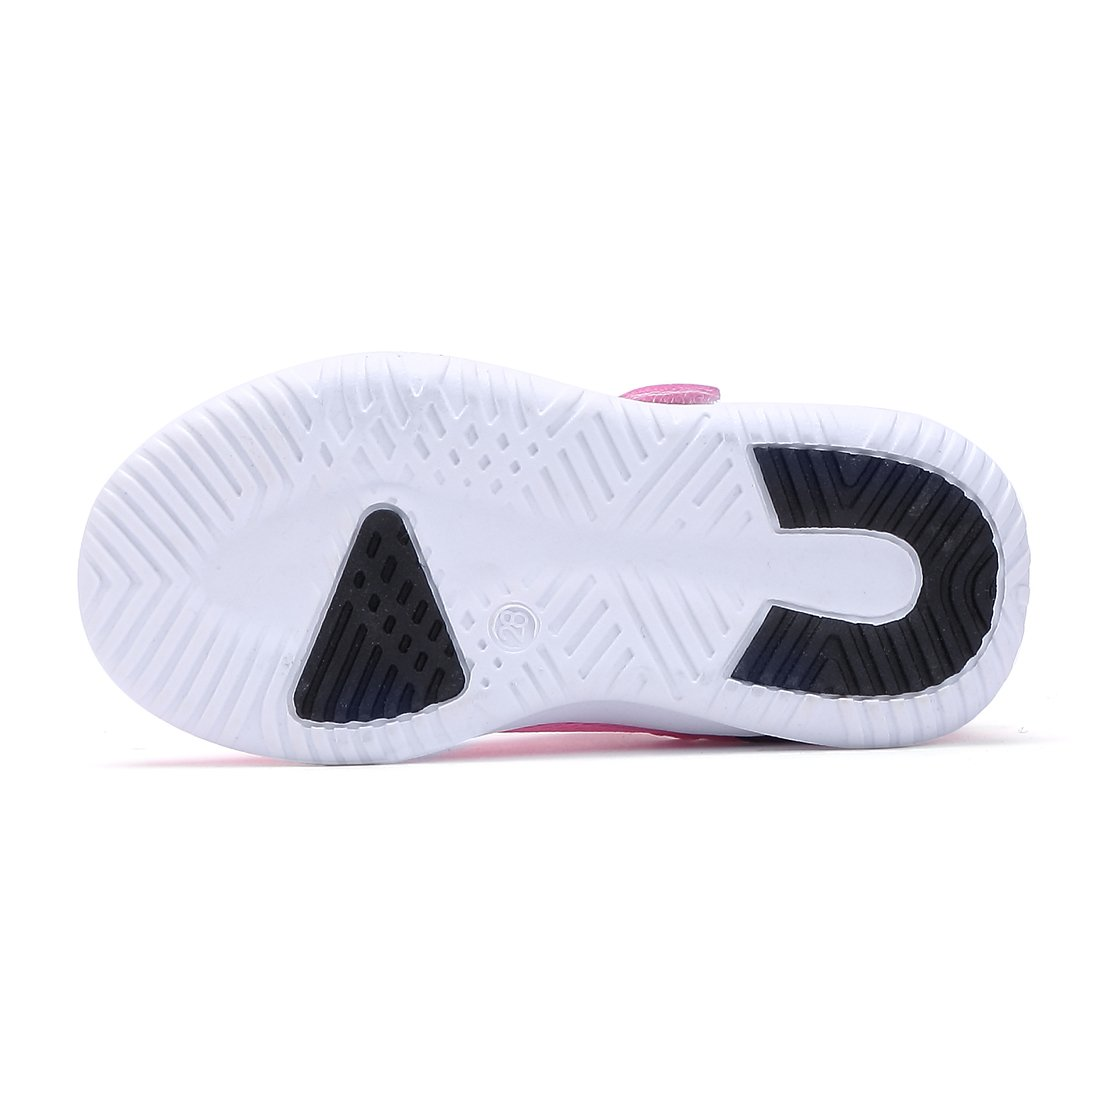 BTDREAM Boy and Girl's Breathable Fashion Sneakers Athletic Outdoor Sports Running Shoes Pink Size 26 by BTDREAM (Image #6)